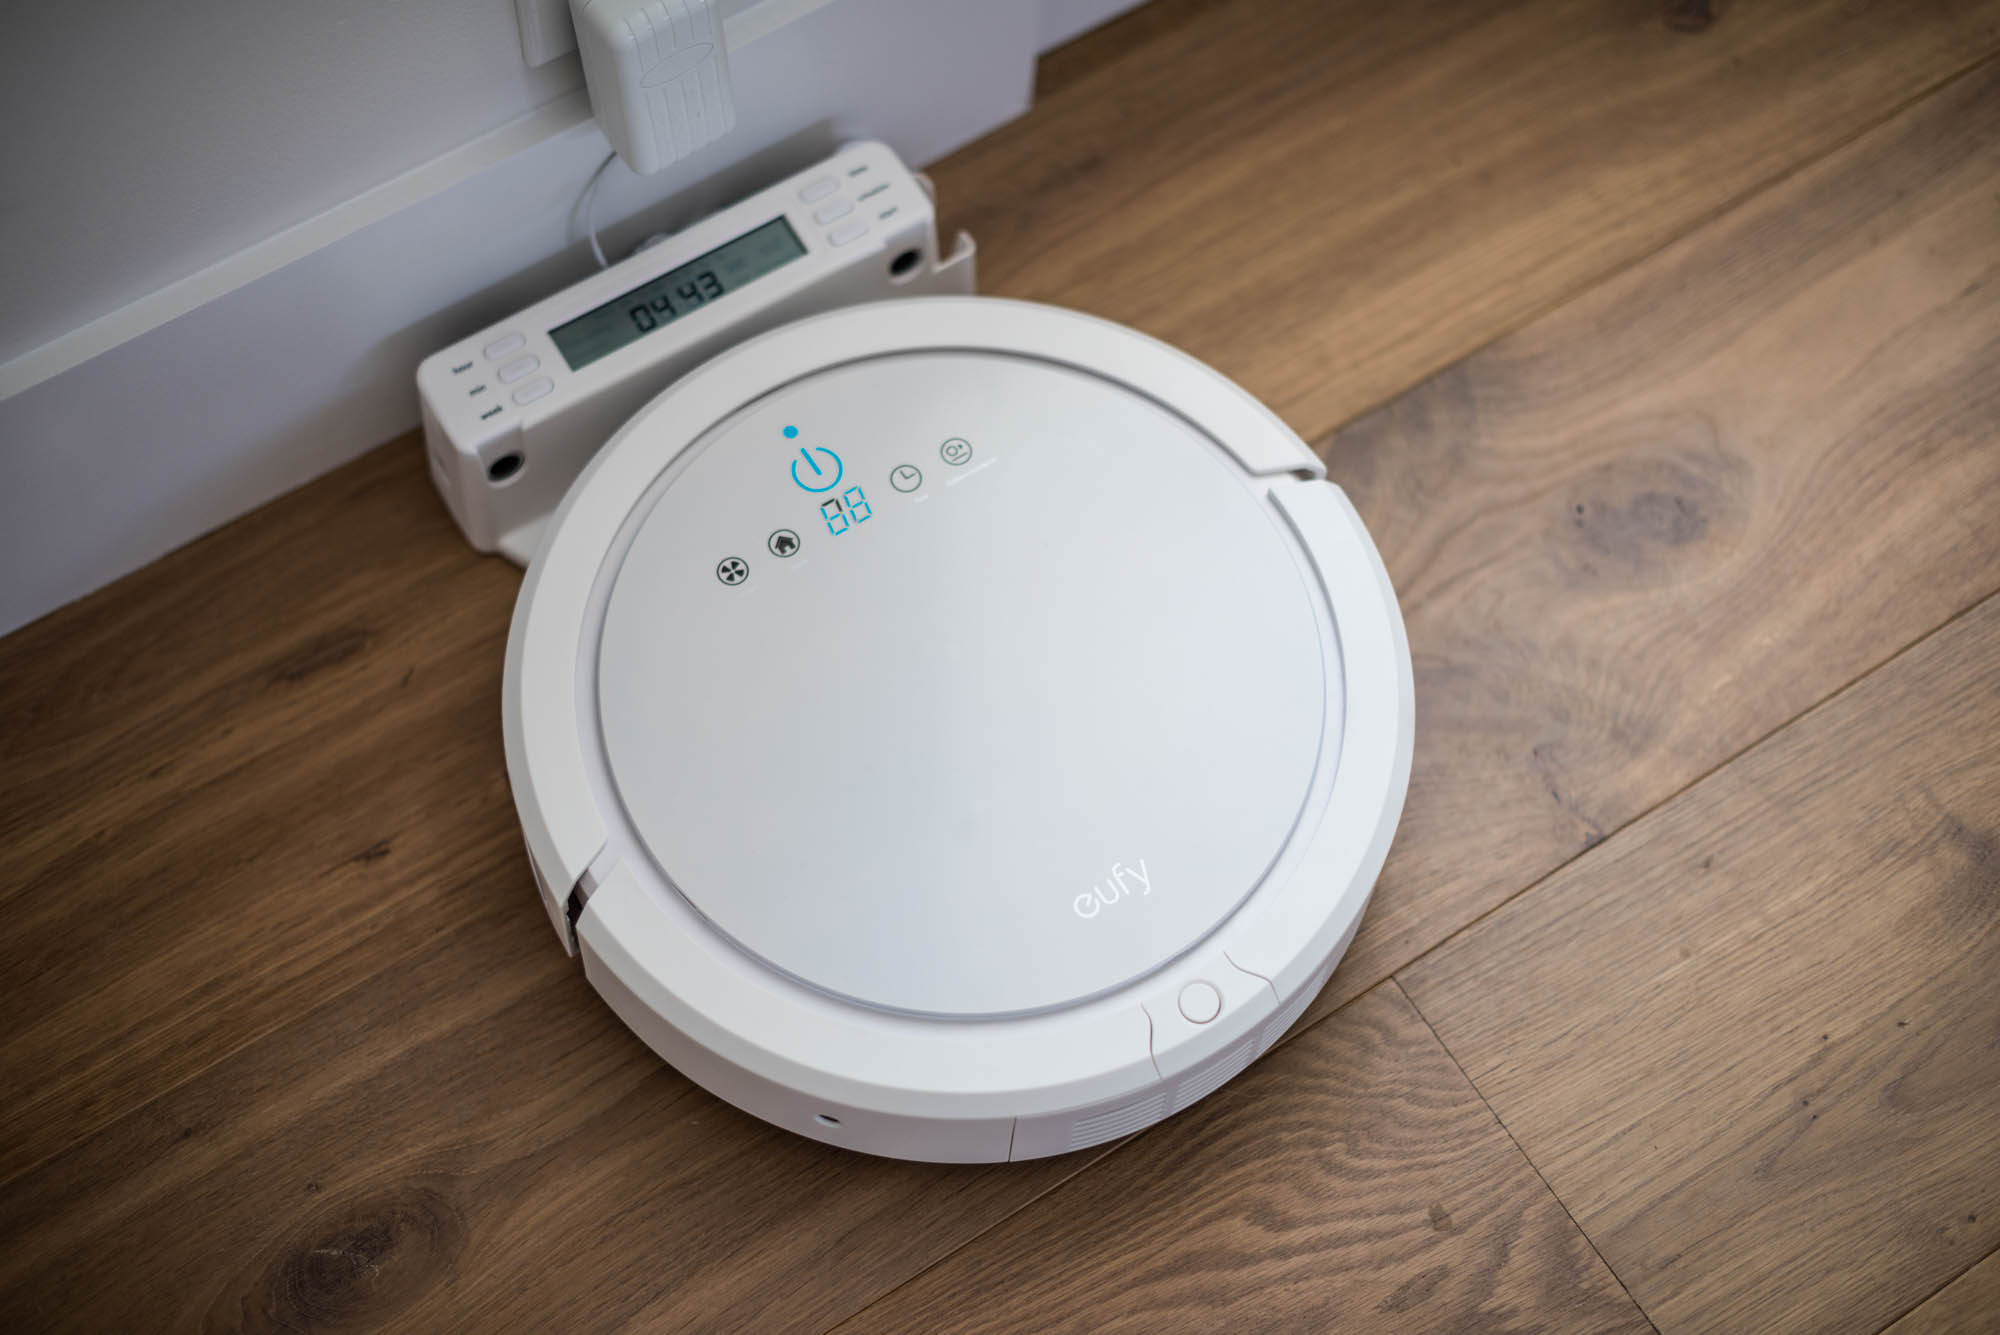 Robotic vacuum product in charger